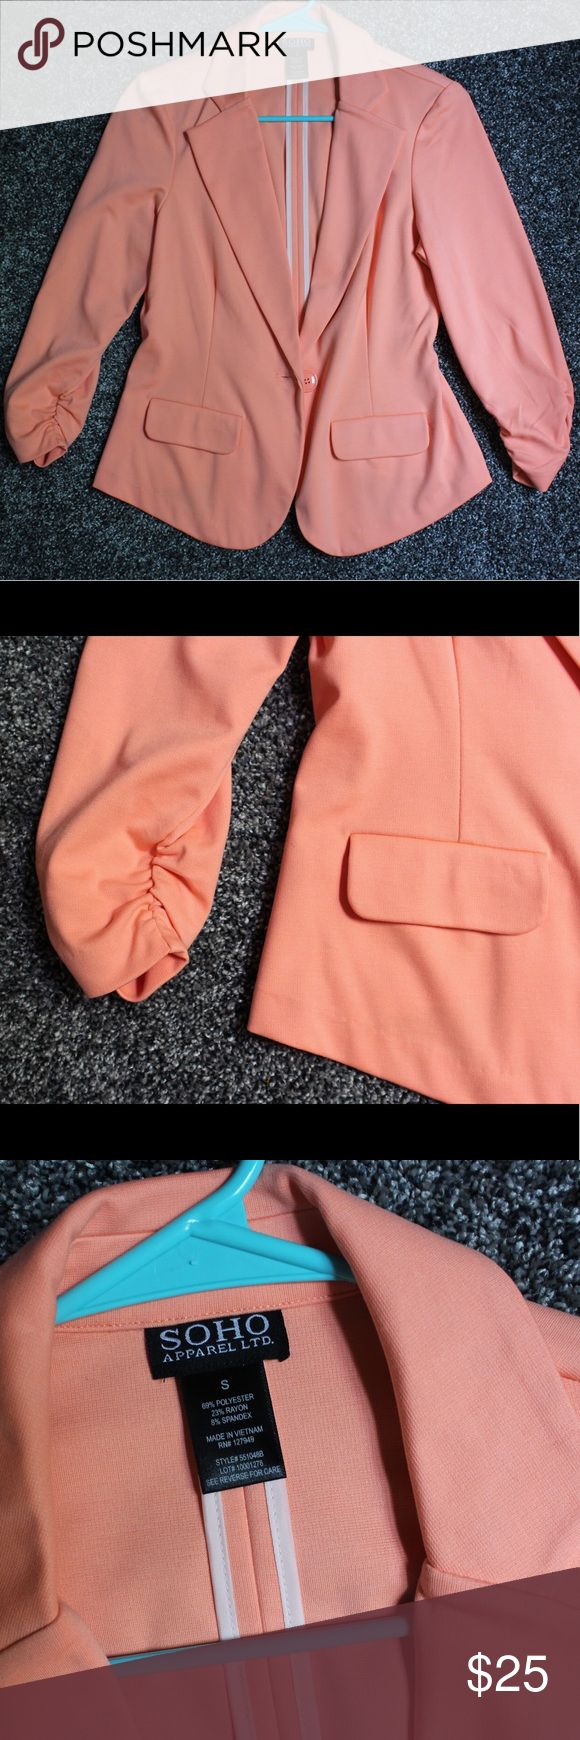 SOHO Apparel Ltd peach blazer Cute fitted peach blazer with cinched sleeves. One button for optional closure, with two decorative pockets on the front. Never worn. Can be dressed up or down. 69% polyester, 23% rayon, 8% spandex. SOHO Apparel Ltd Jackets & Coats Blazers